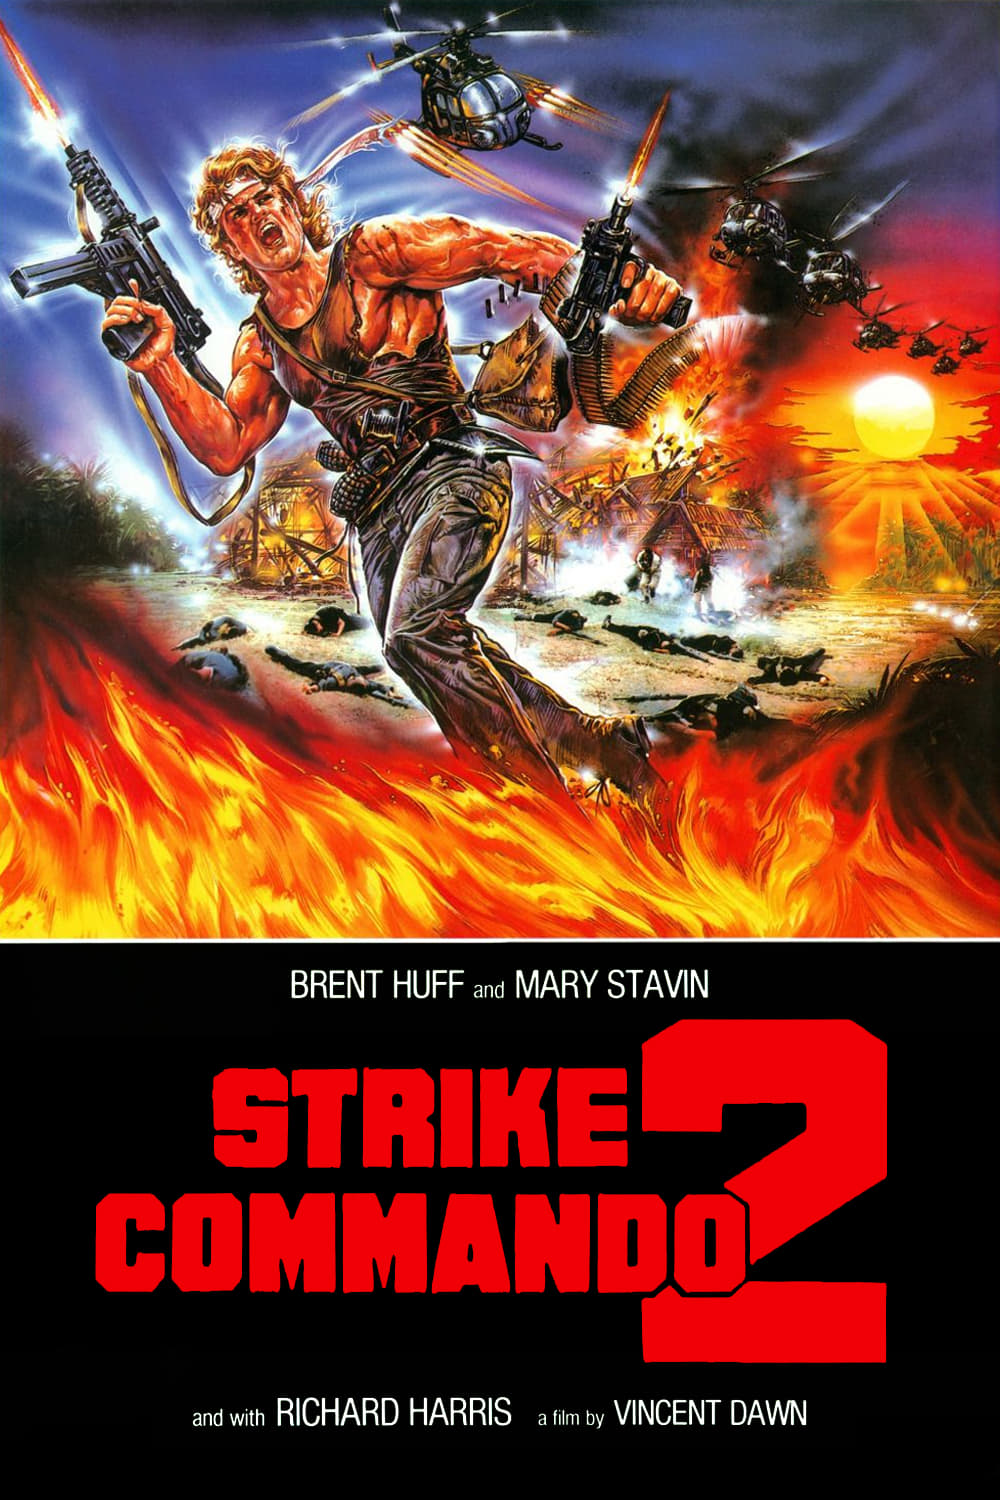 Strike Commando 2 (1988)